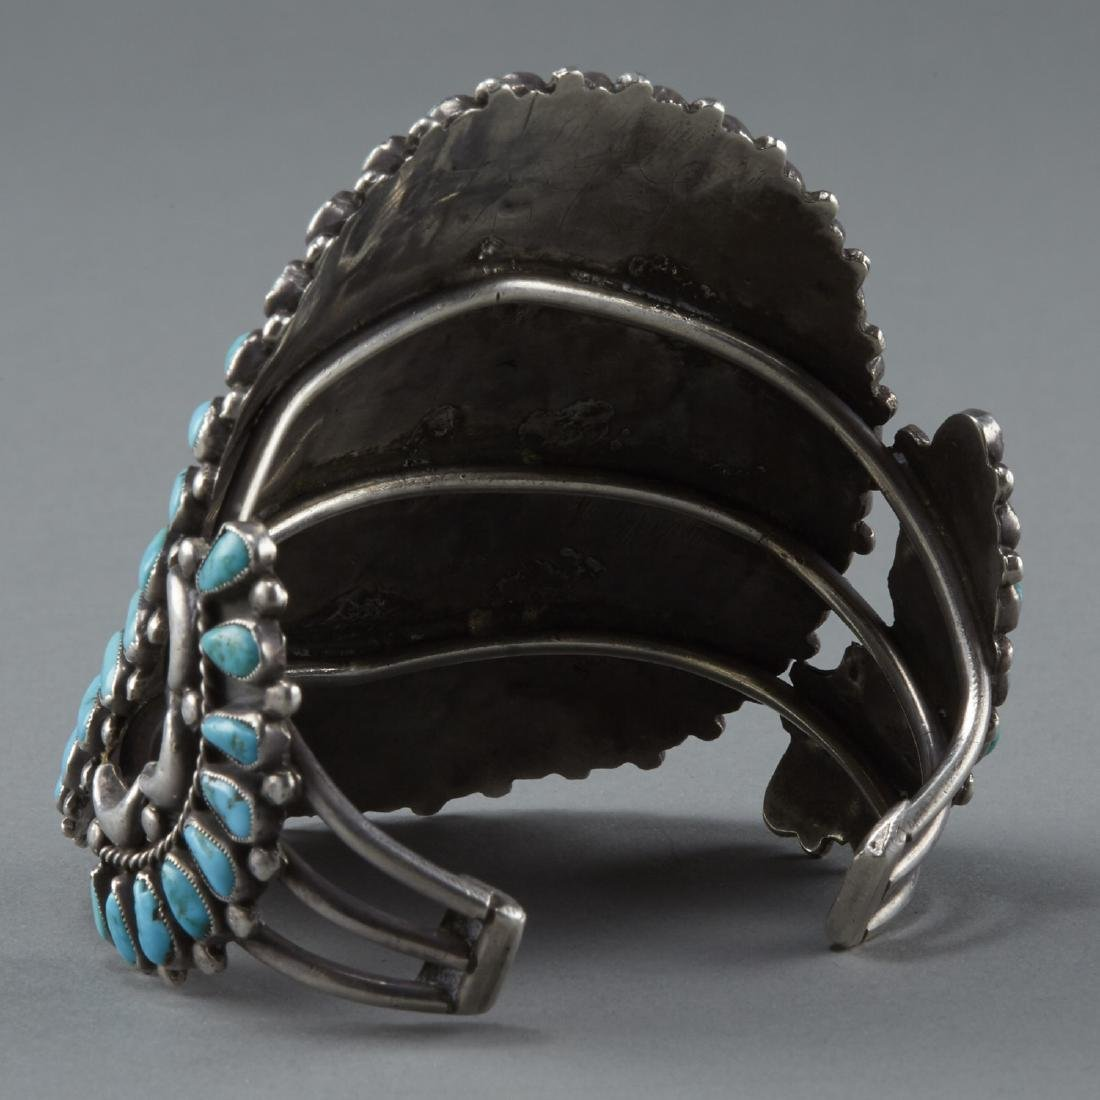 Southwestern Silver and Turquoise Cuff Bracelet - 2